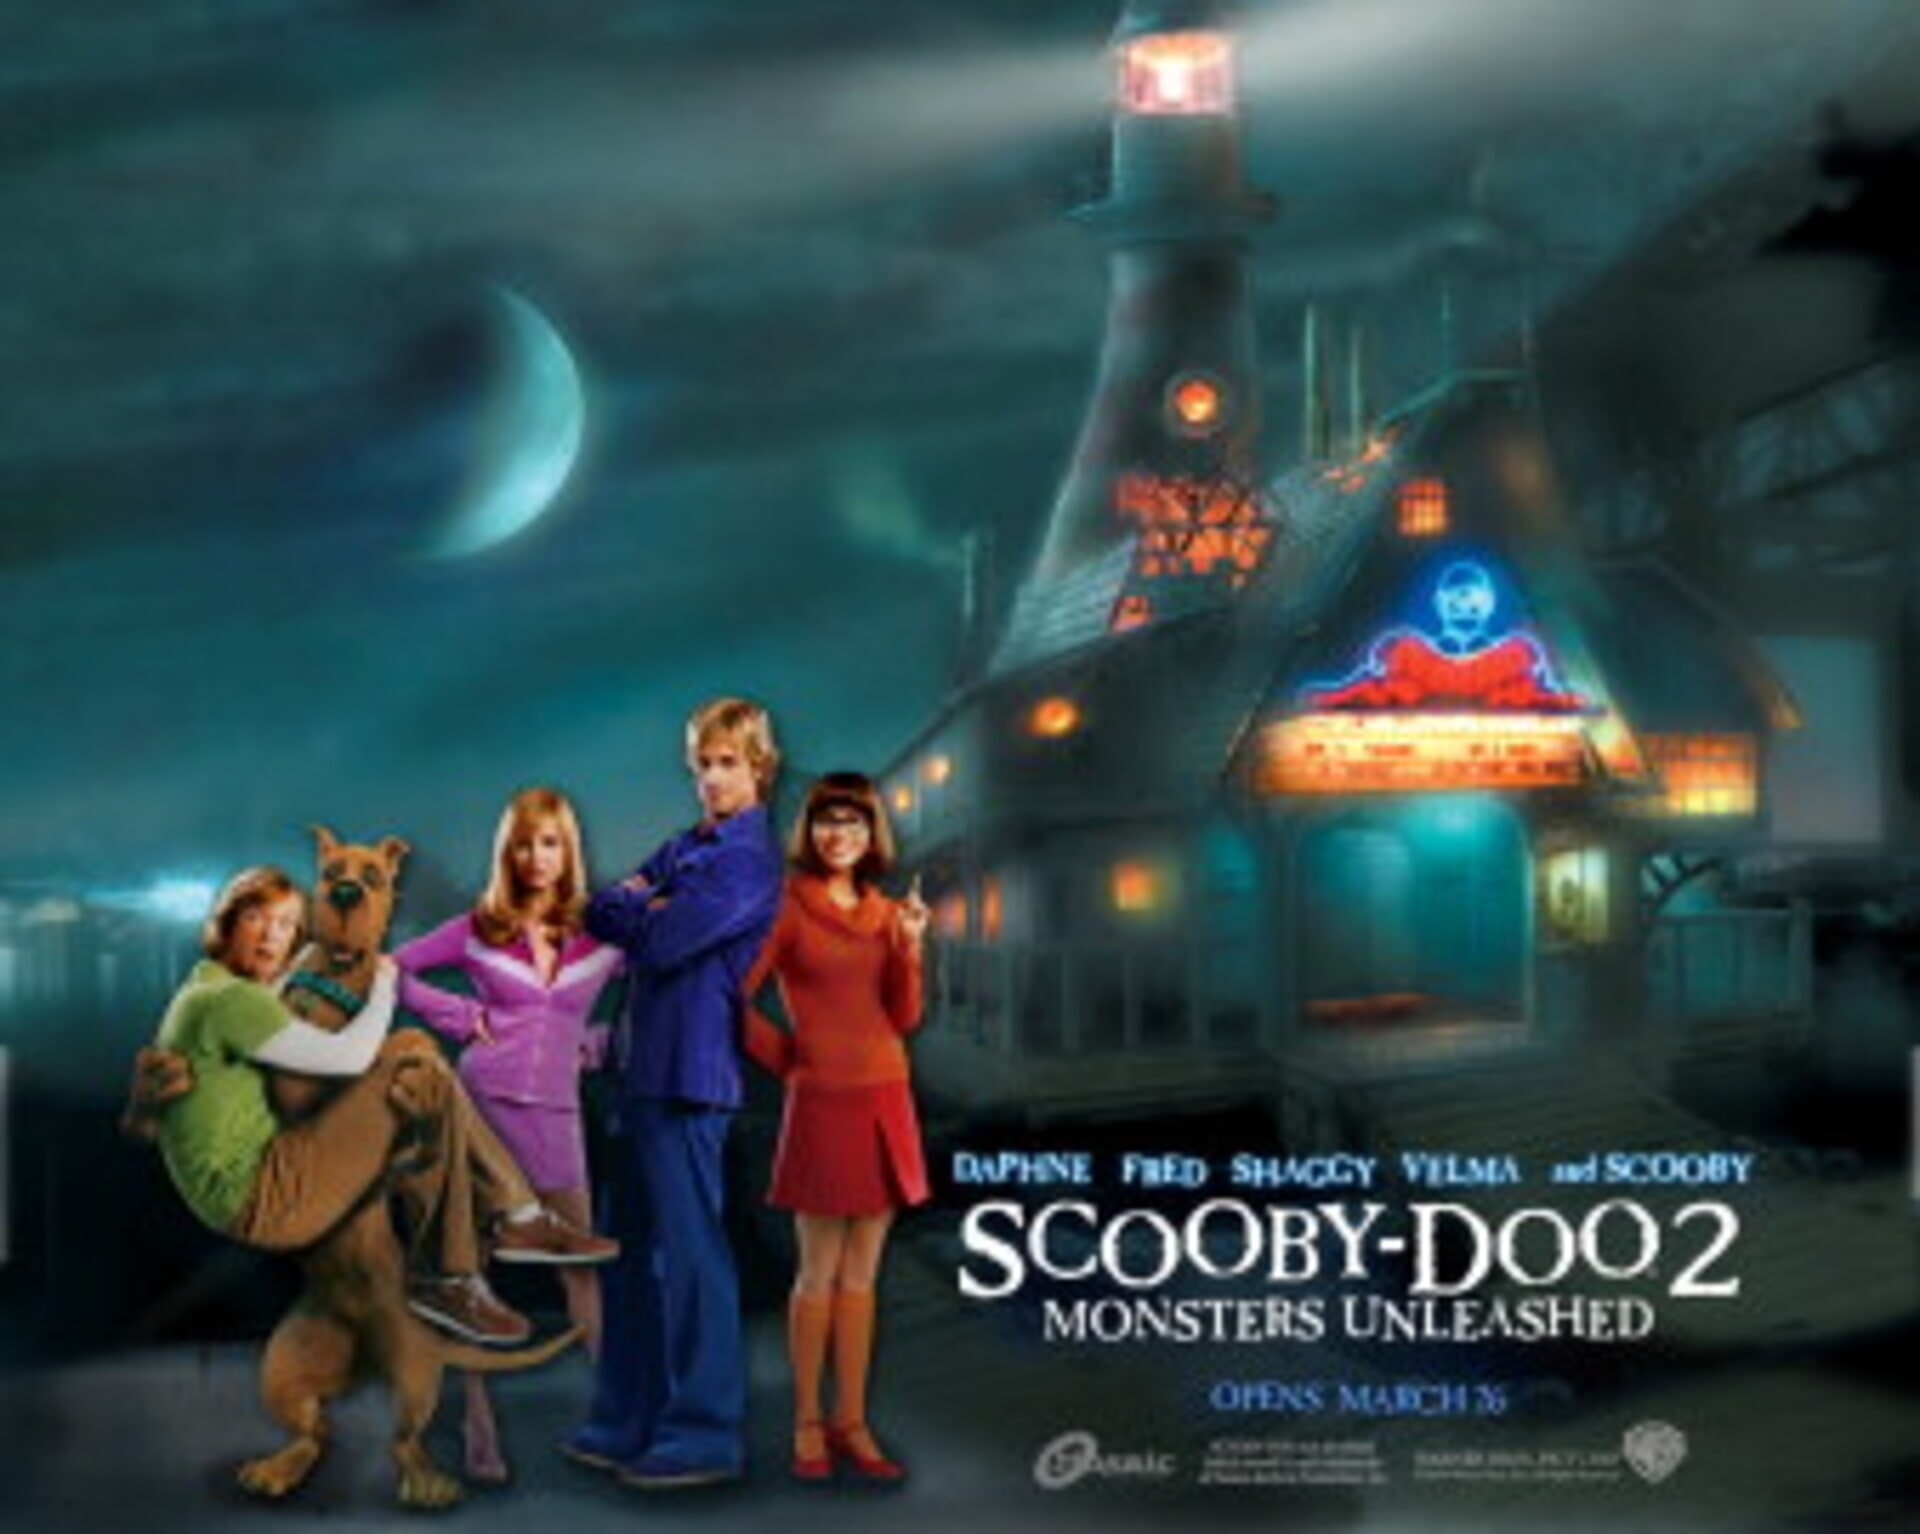 Scooby-Doo 2: Monsters Unleashed - Image 2